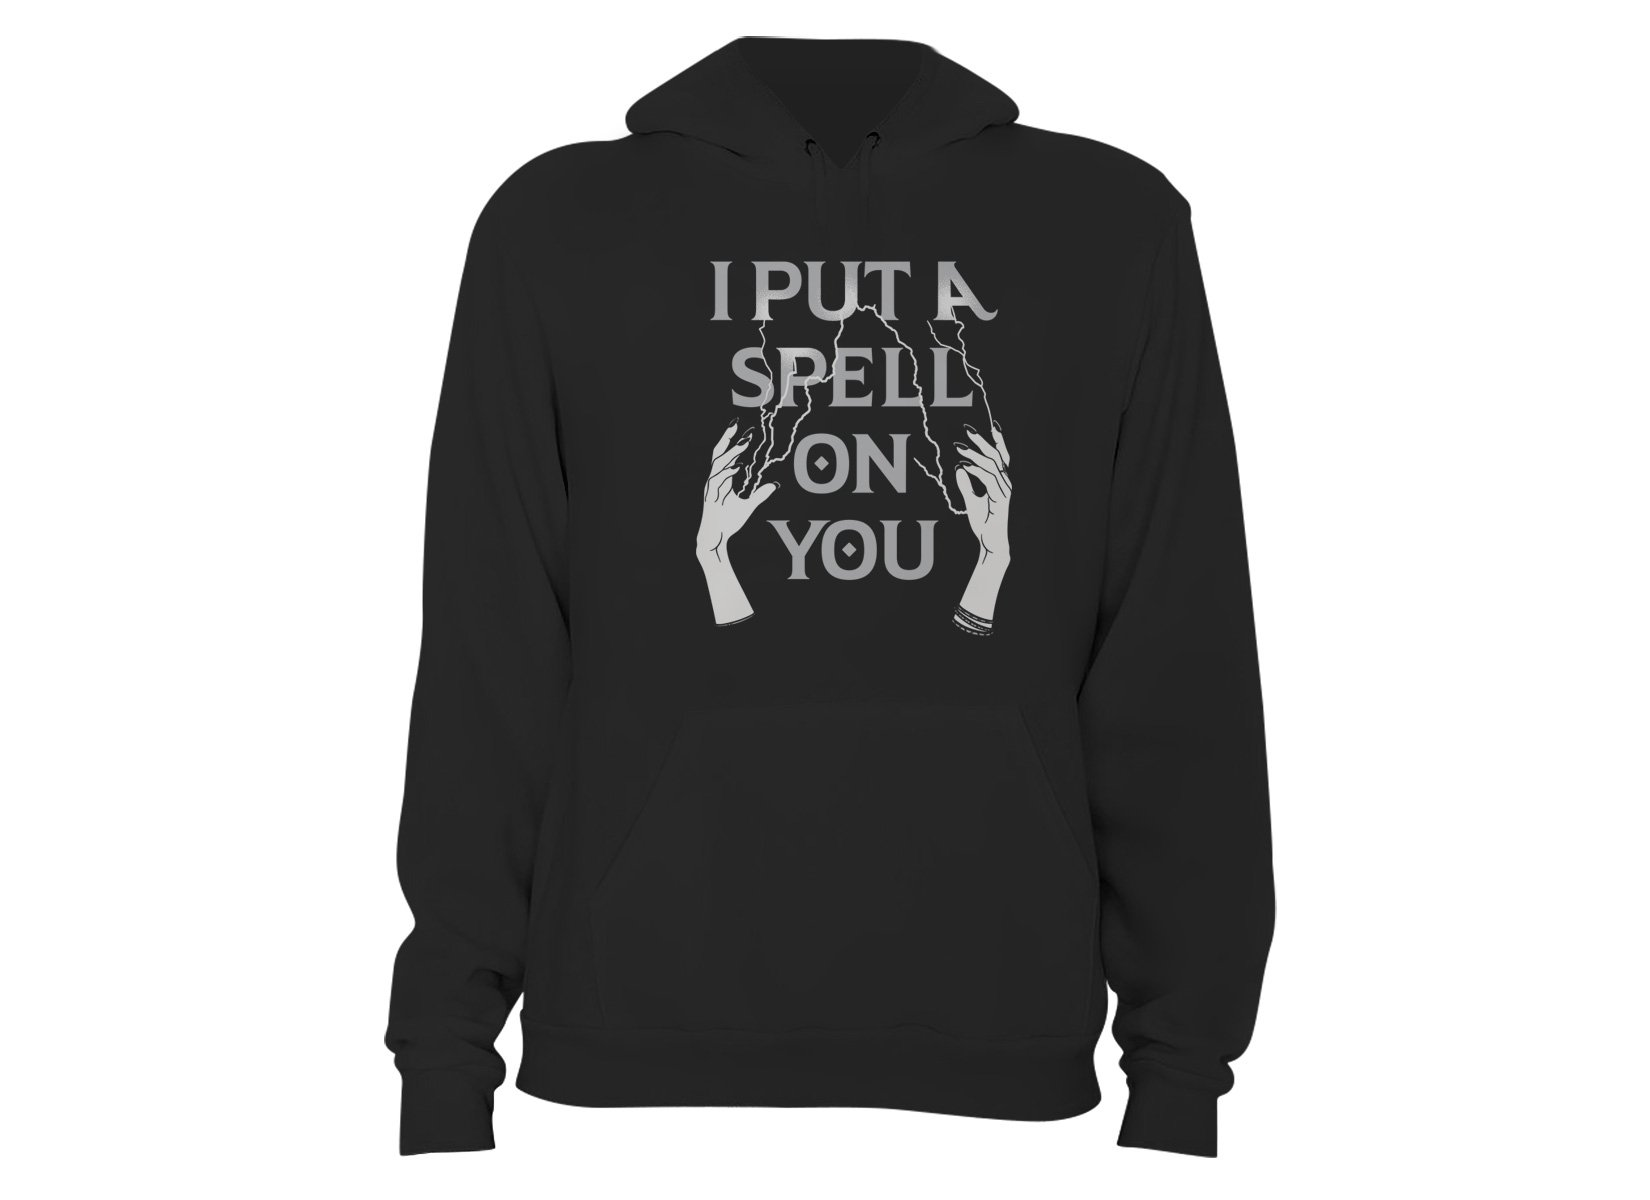 I Put A Spell On You on Hoodie